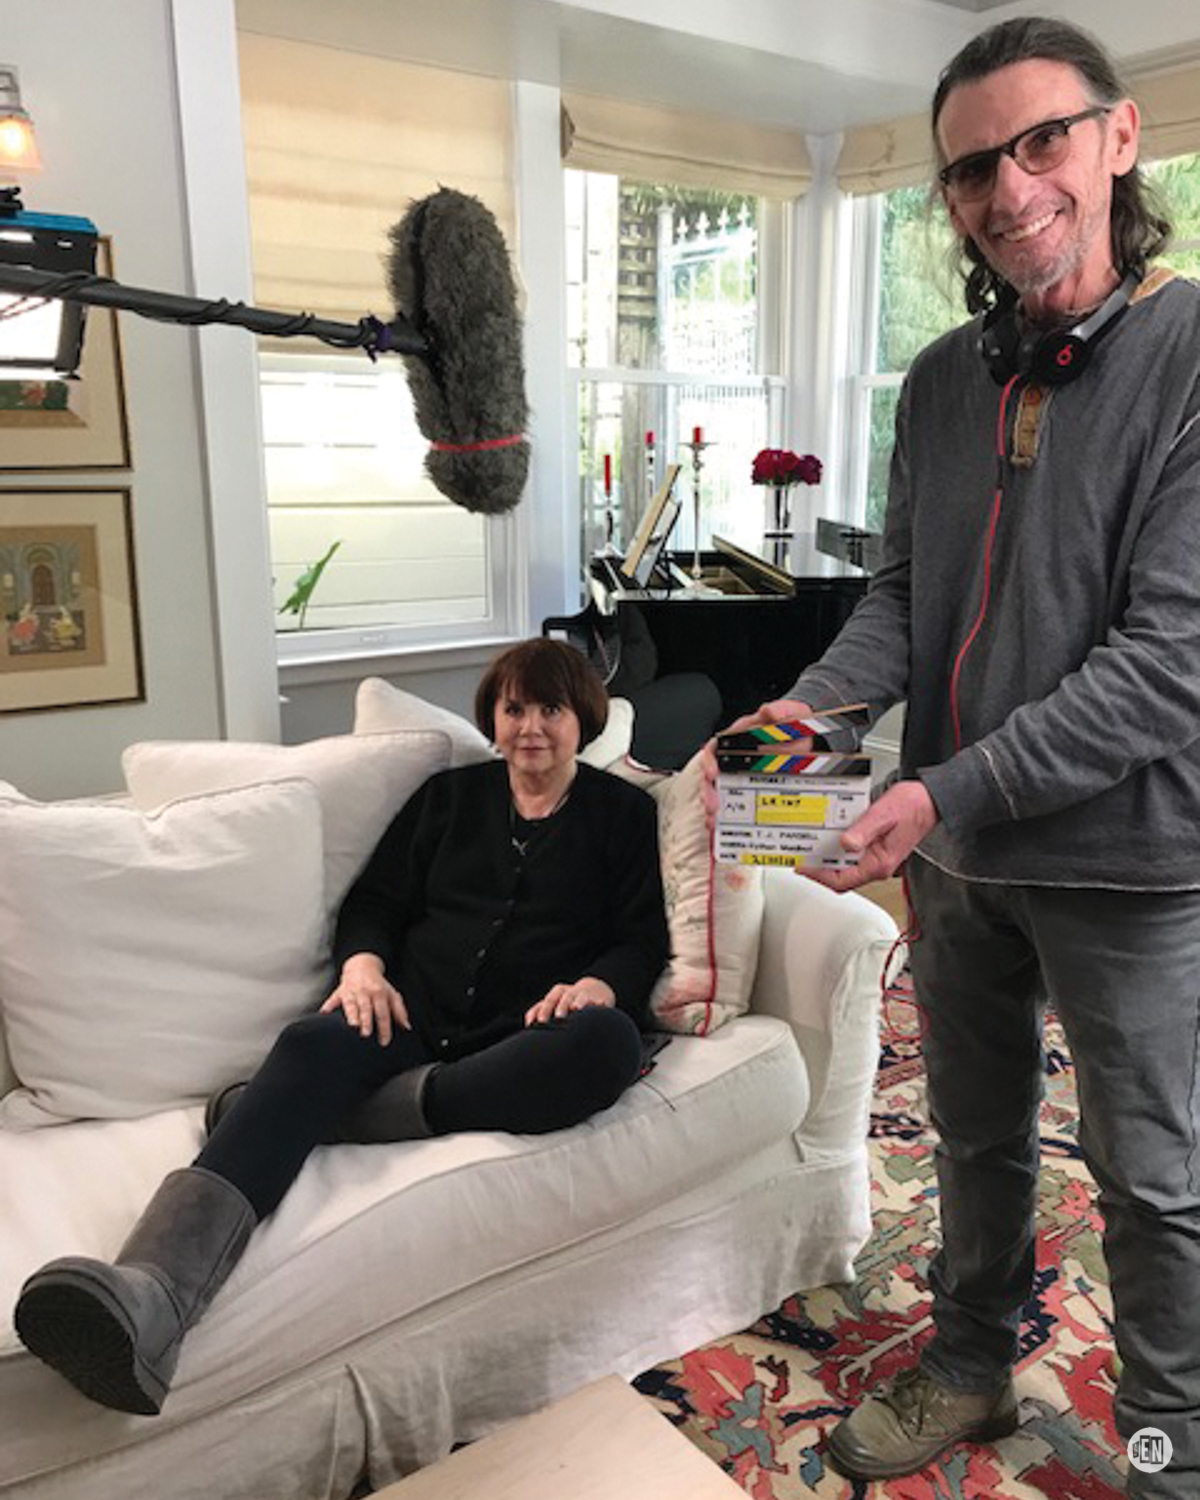 Bill Brimm sets up for a shot with Linda Ronstadt.